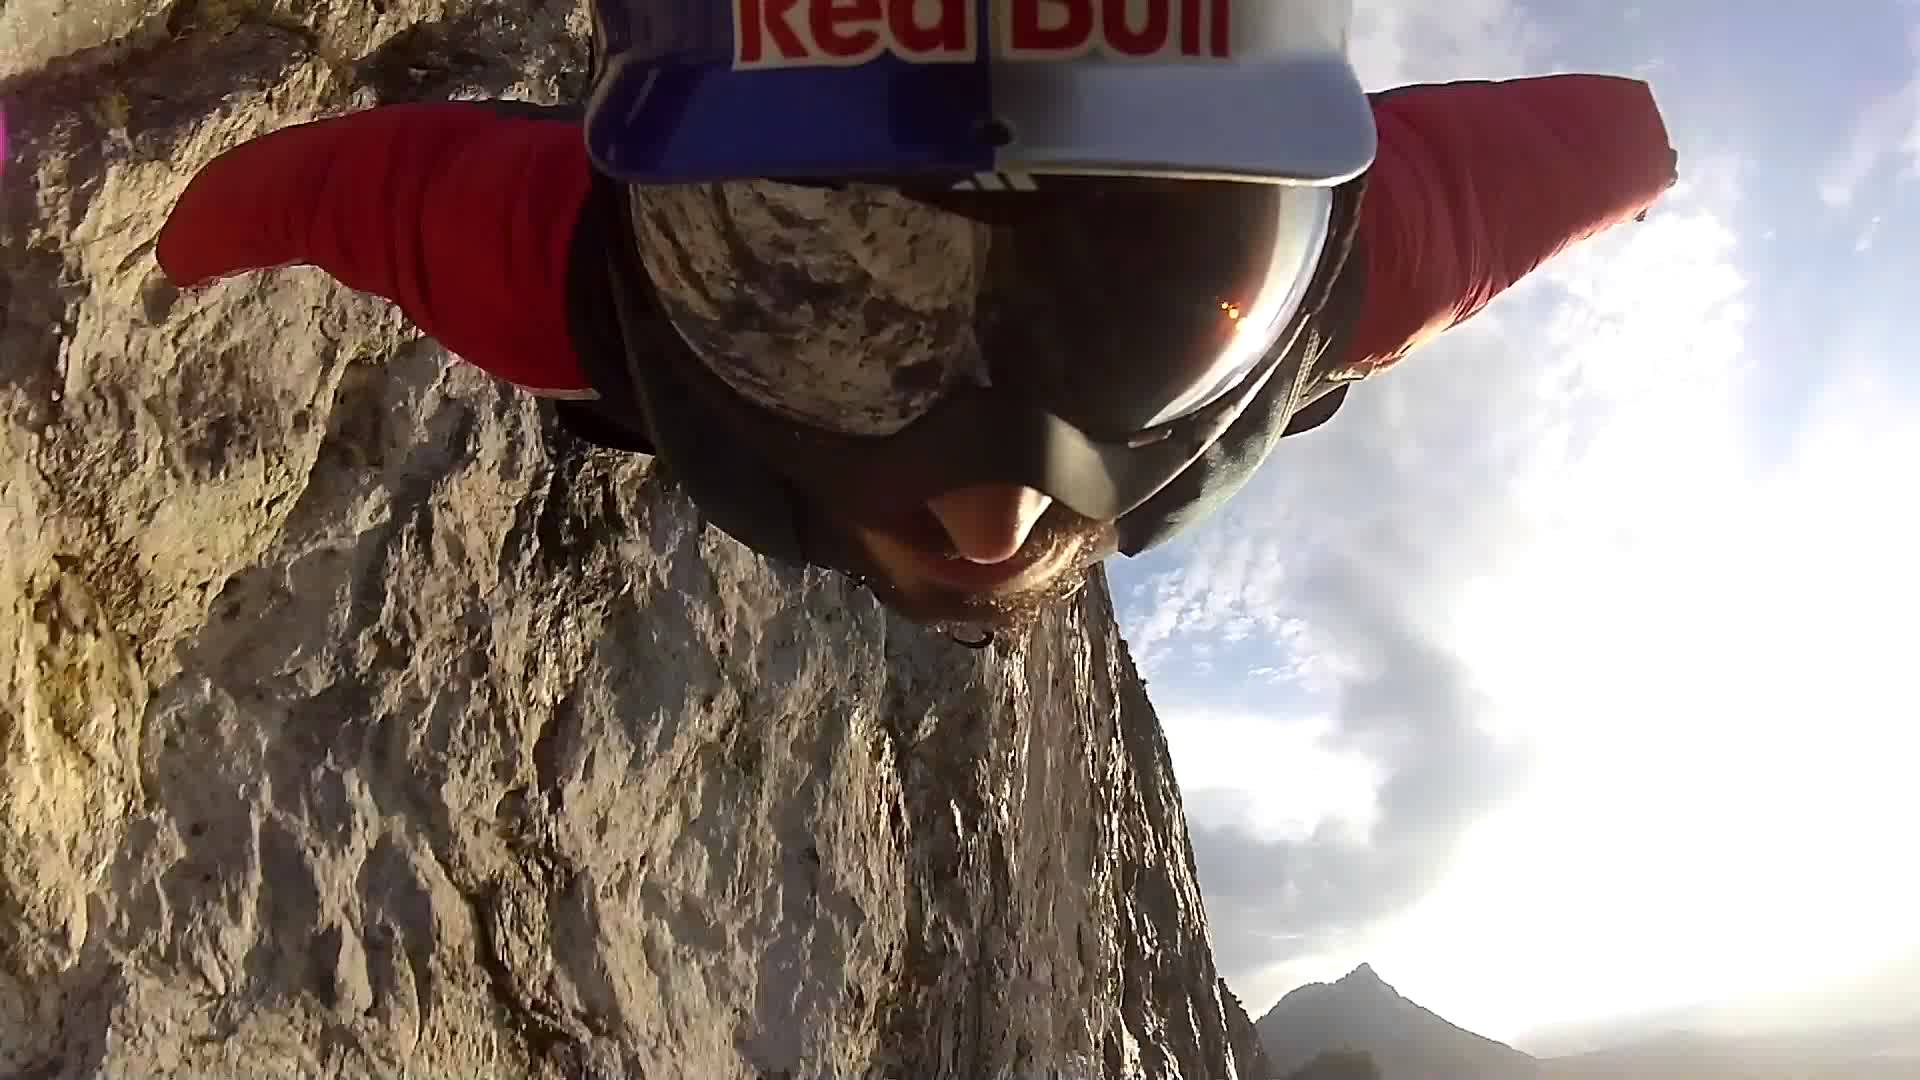 Drift HD Ghost: Red Bull Wingsuit Flying, Base Jumping and Flying a Jet